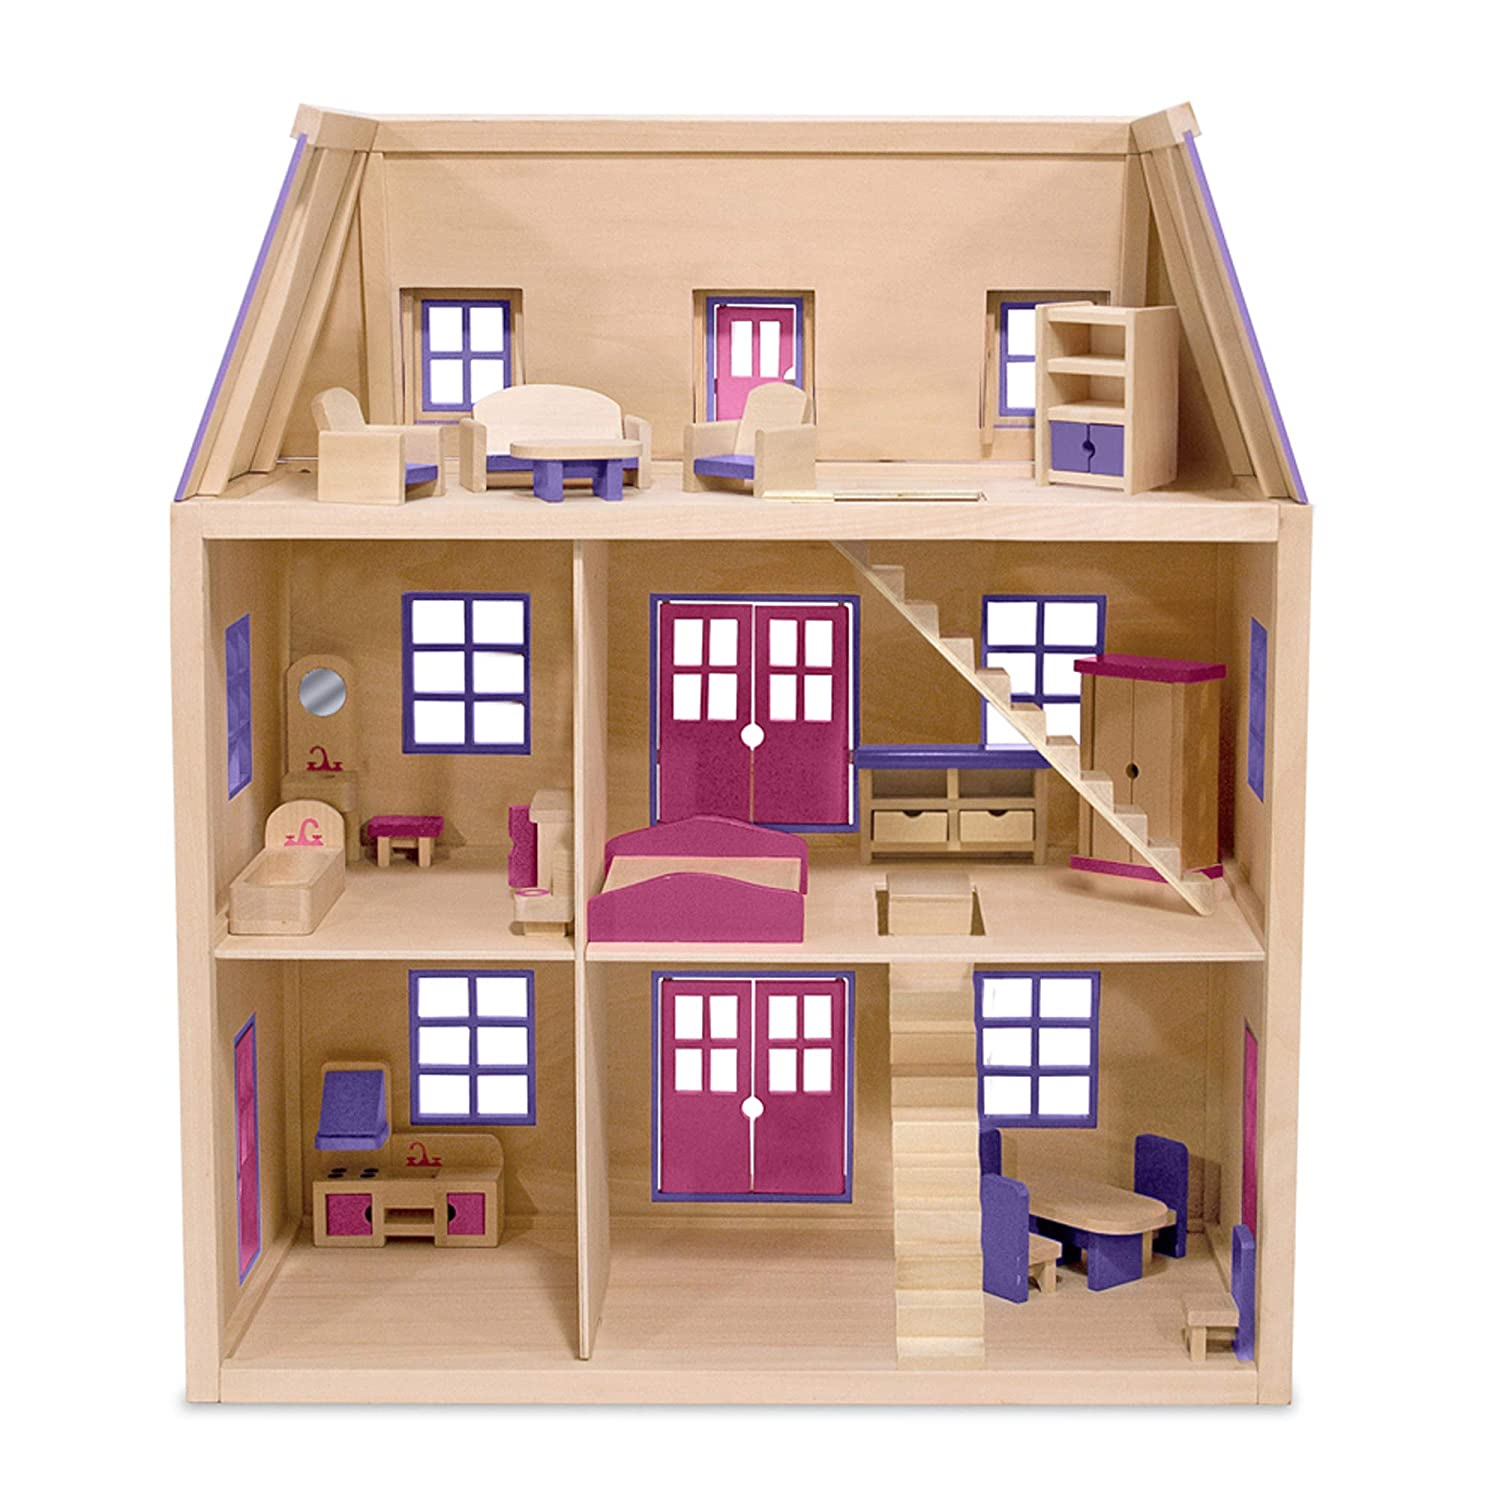 Top 9 Best Dollhouse for Toddlers Reviews in 2021 16